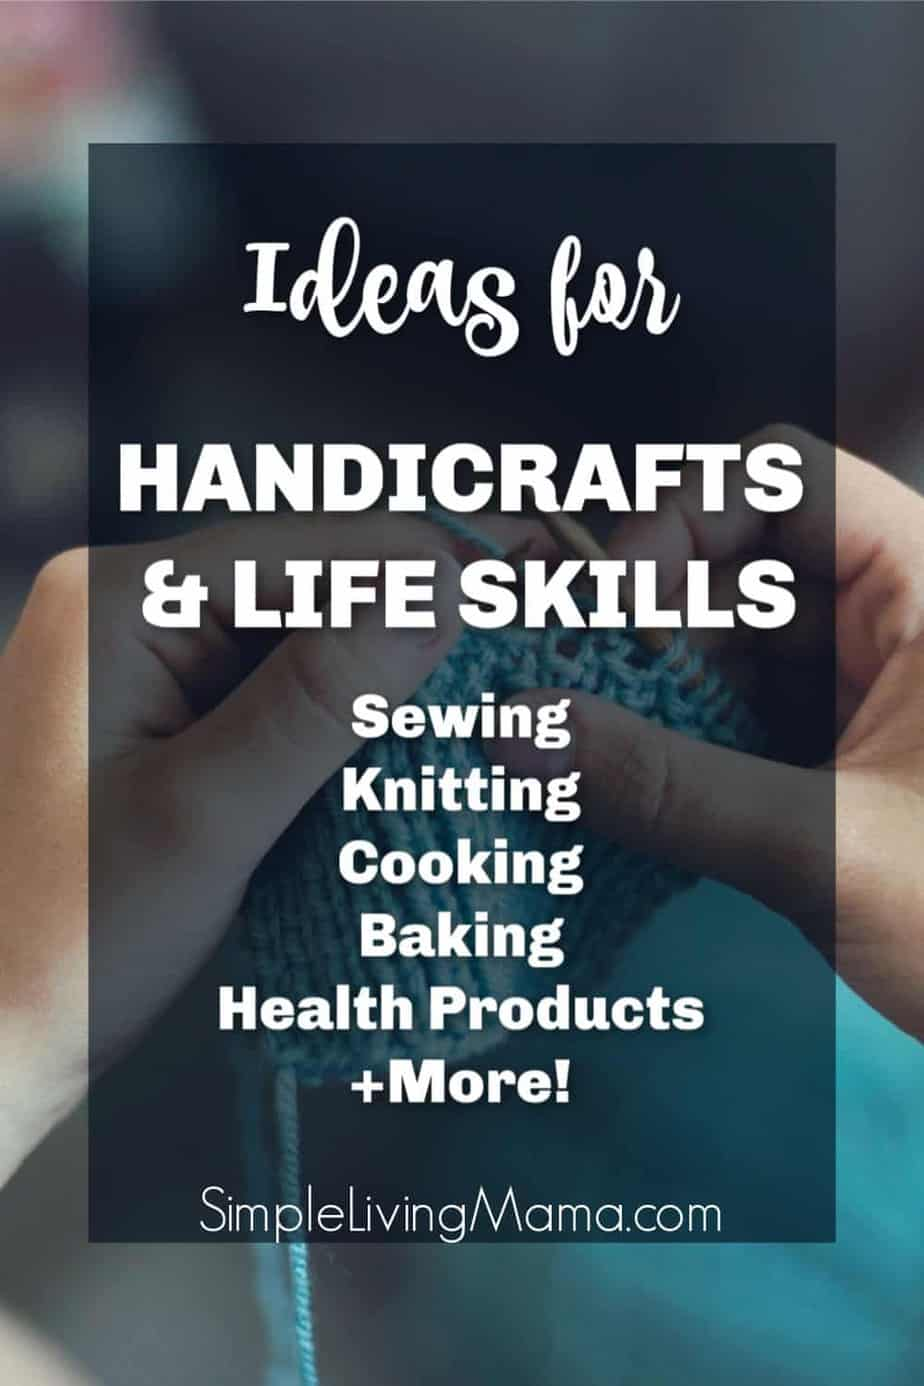 Handicrafts and life skills for simple living